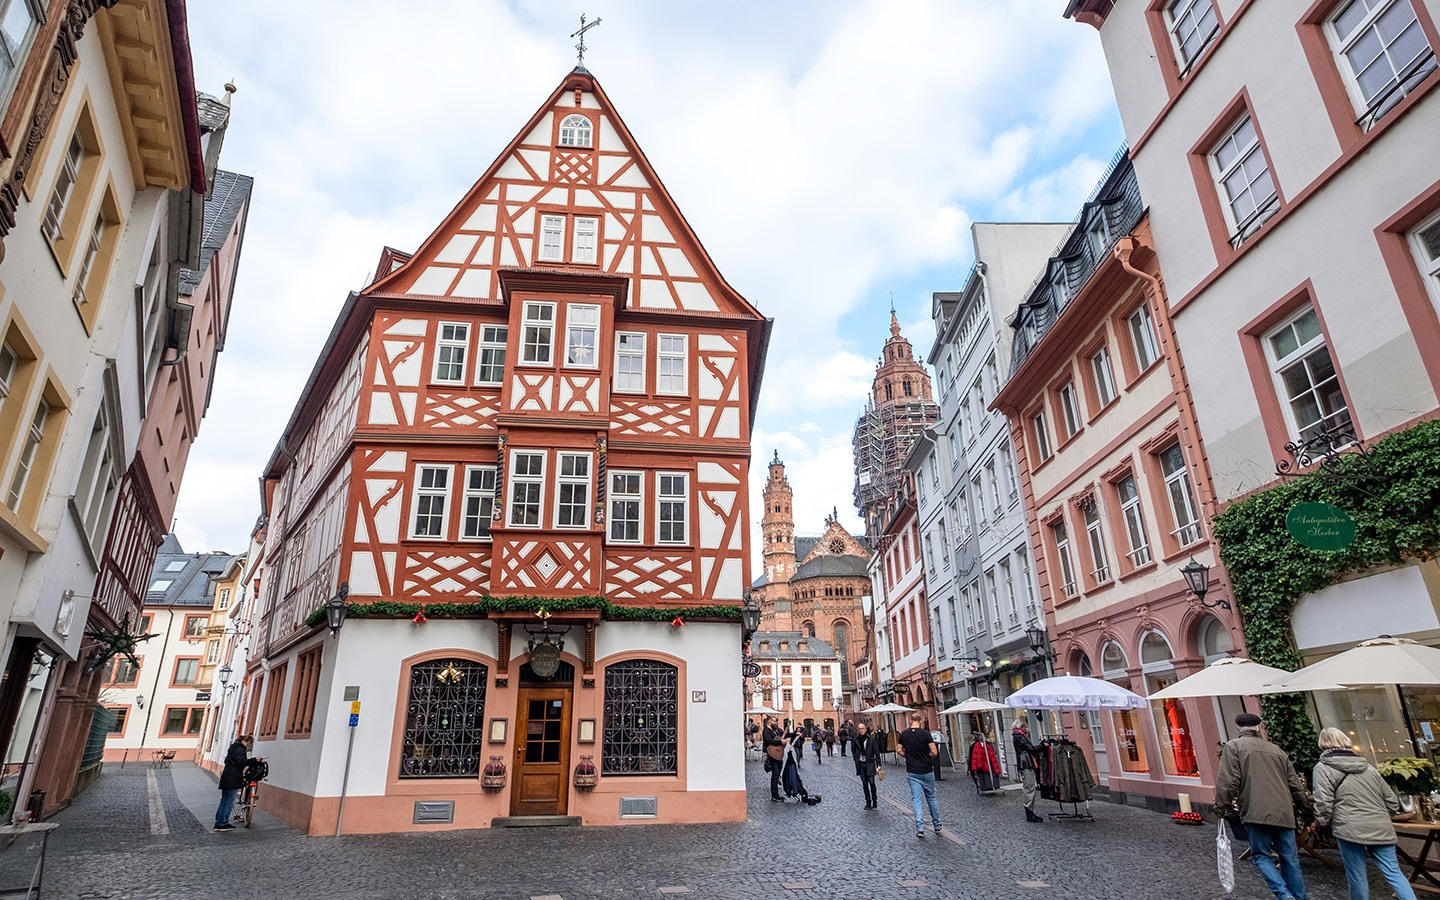 The historic centre of Mainz, Germany